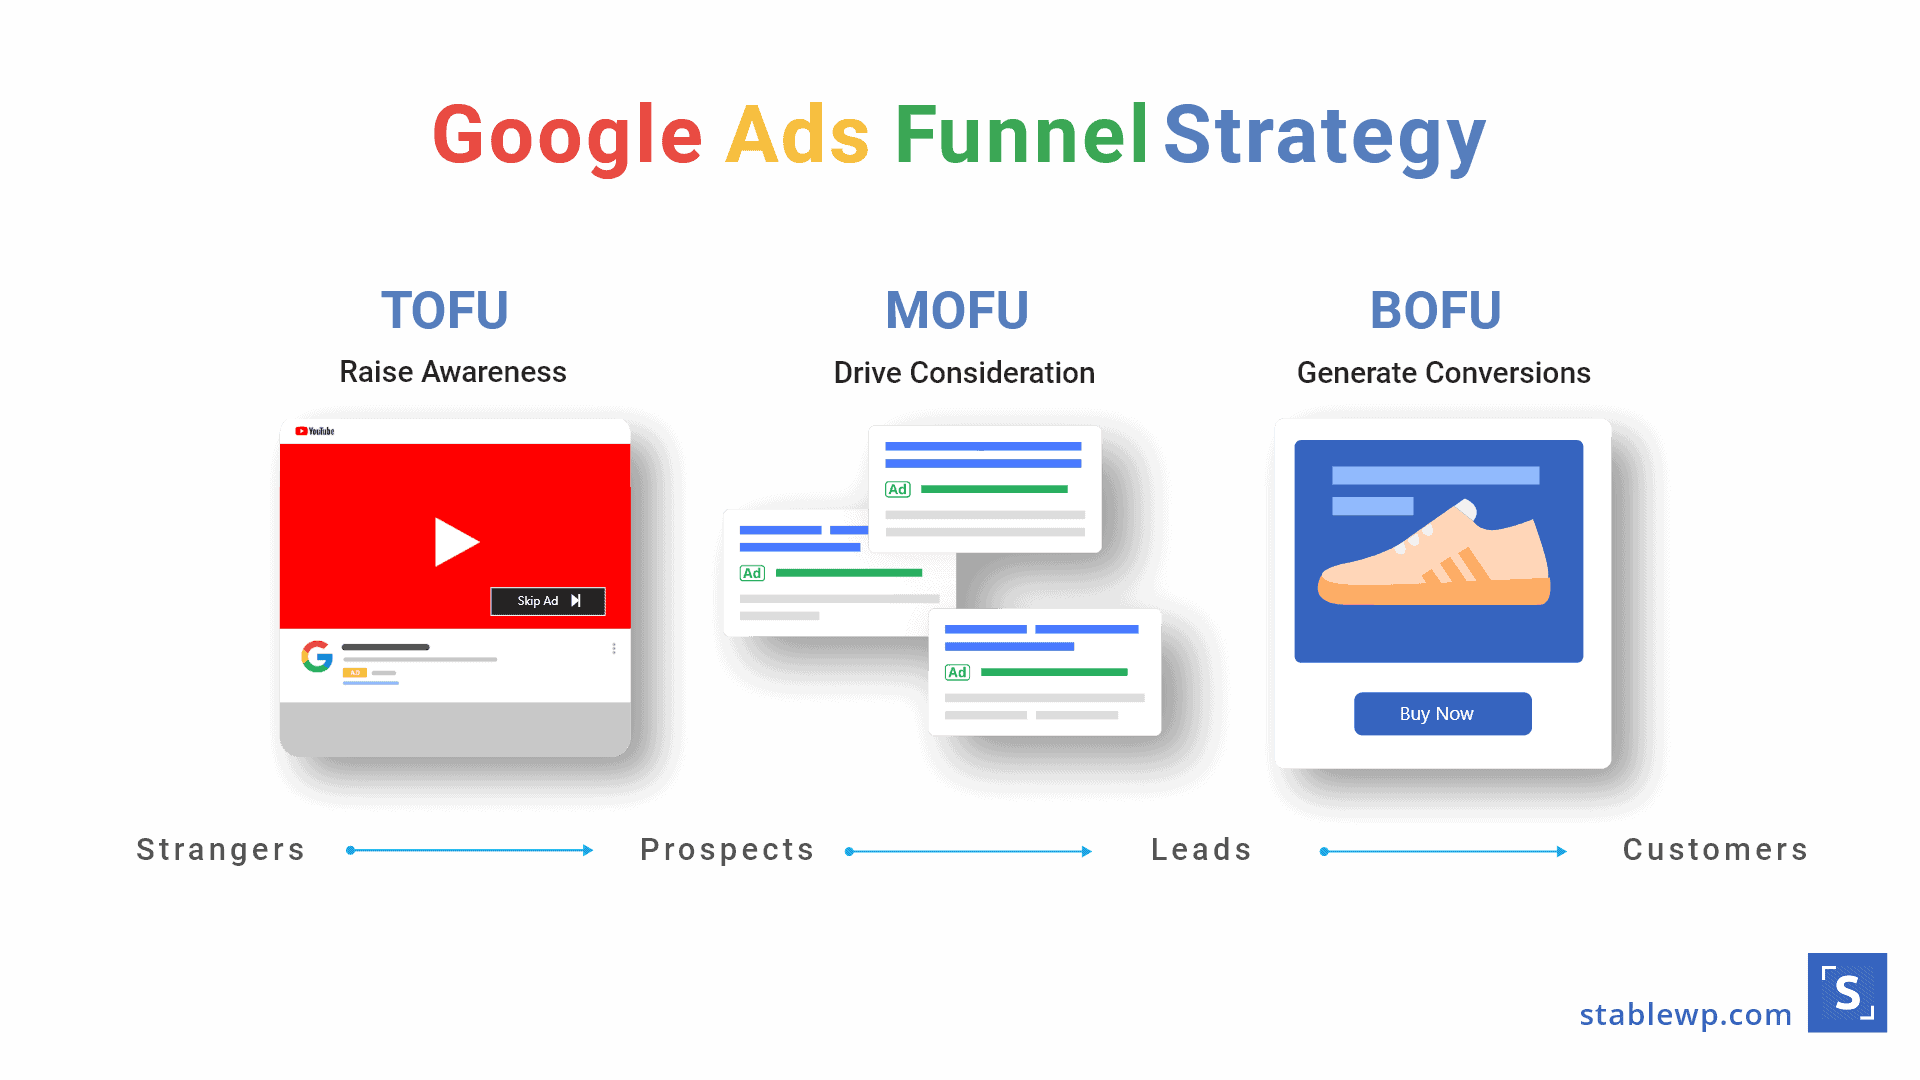 Google Ads funnel strategy for PPC infographic with three steps, using video ads to attract strangers in the TOFU stage, using Google search ads to turn prospects into leads in the MOFU stage, and using remarketing ads to turn leads into customers in the BOFU stage.